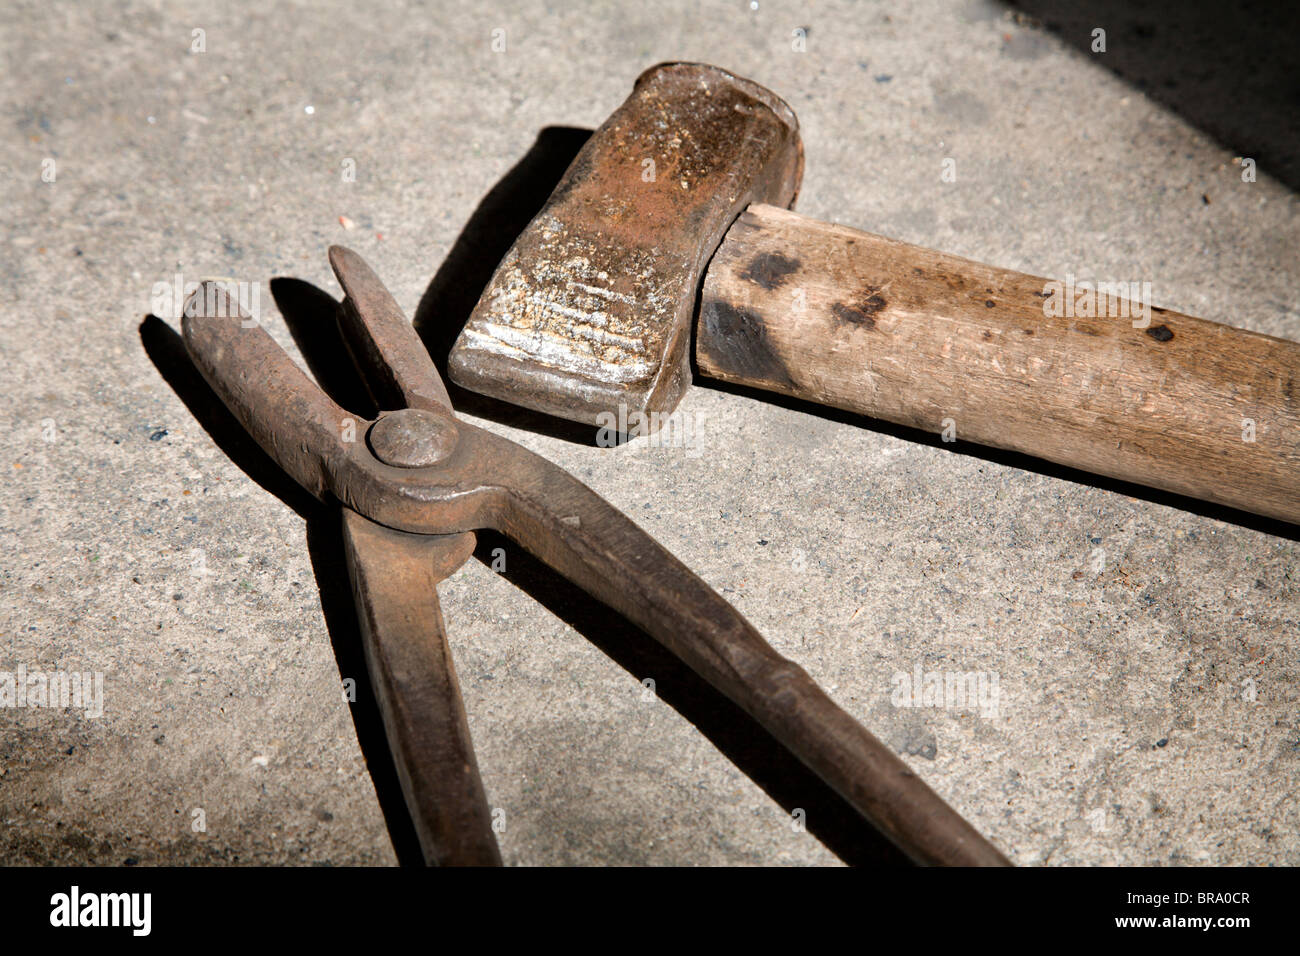 tools from smithy - hammer and shnaks - Stock Image